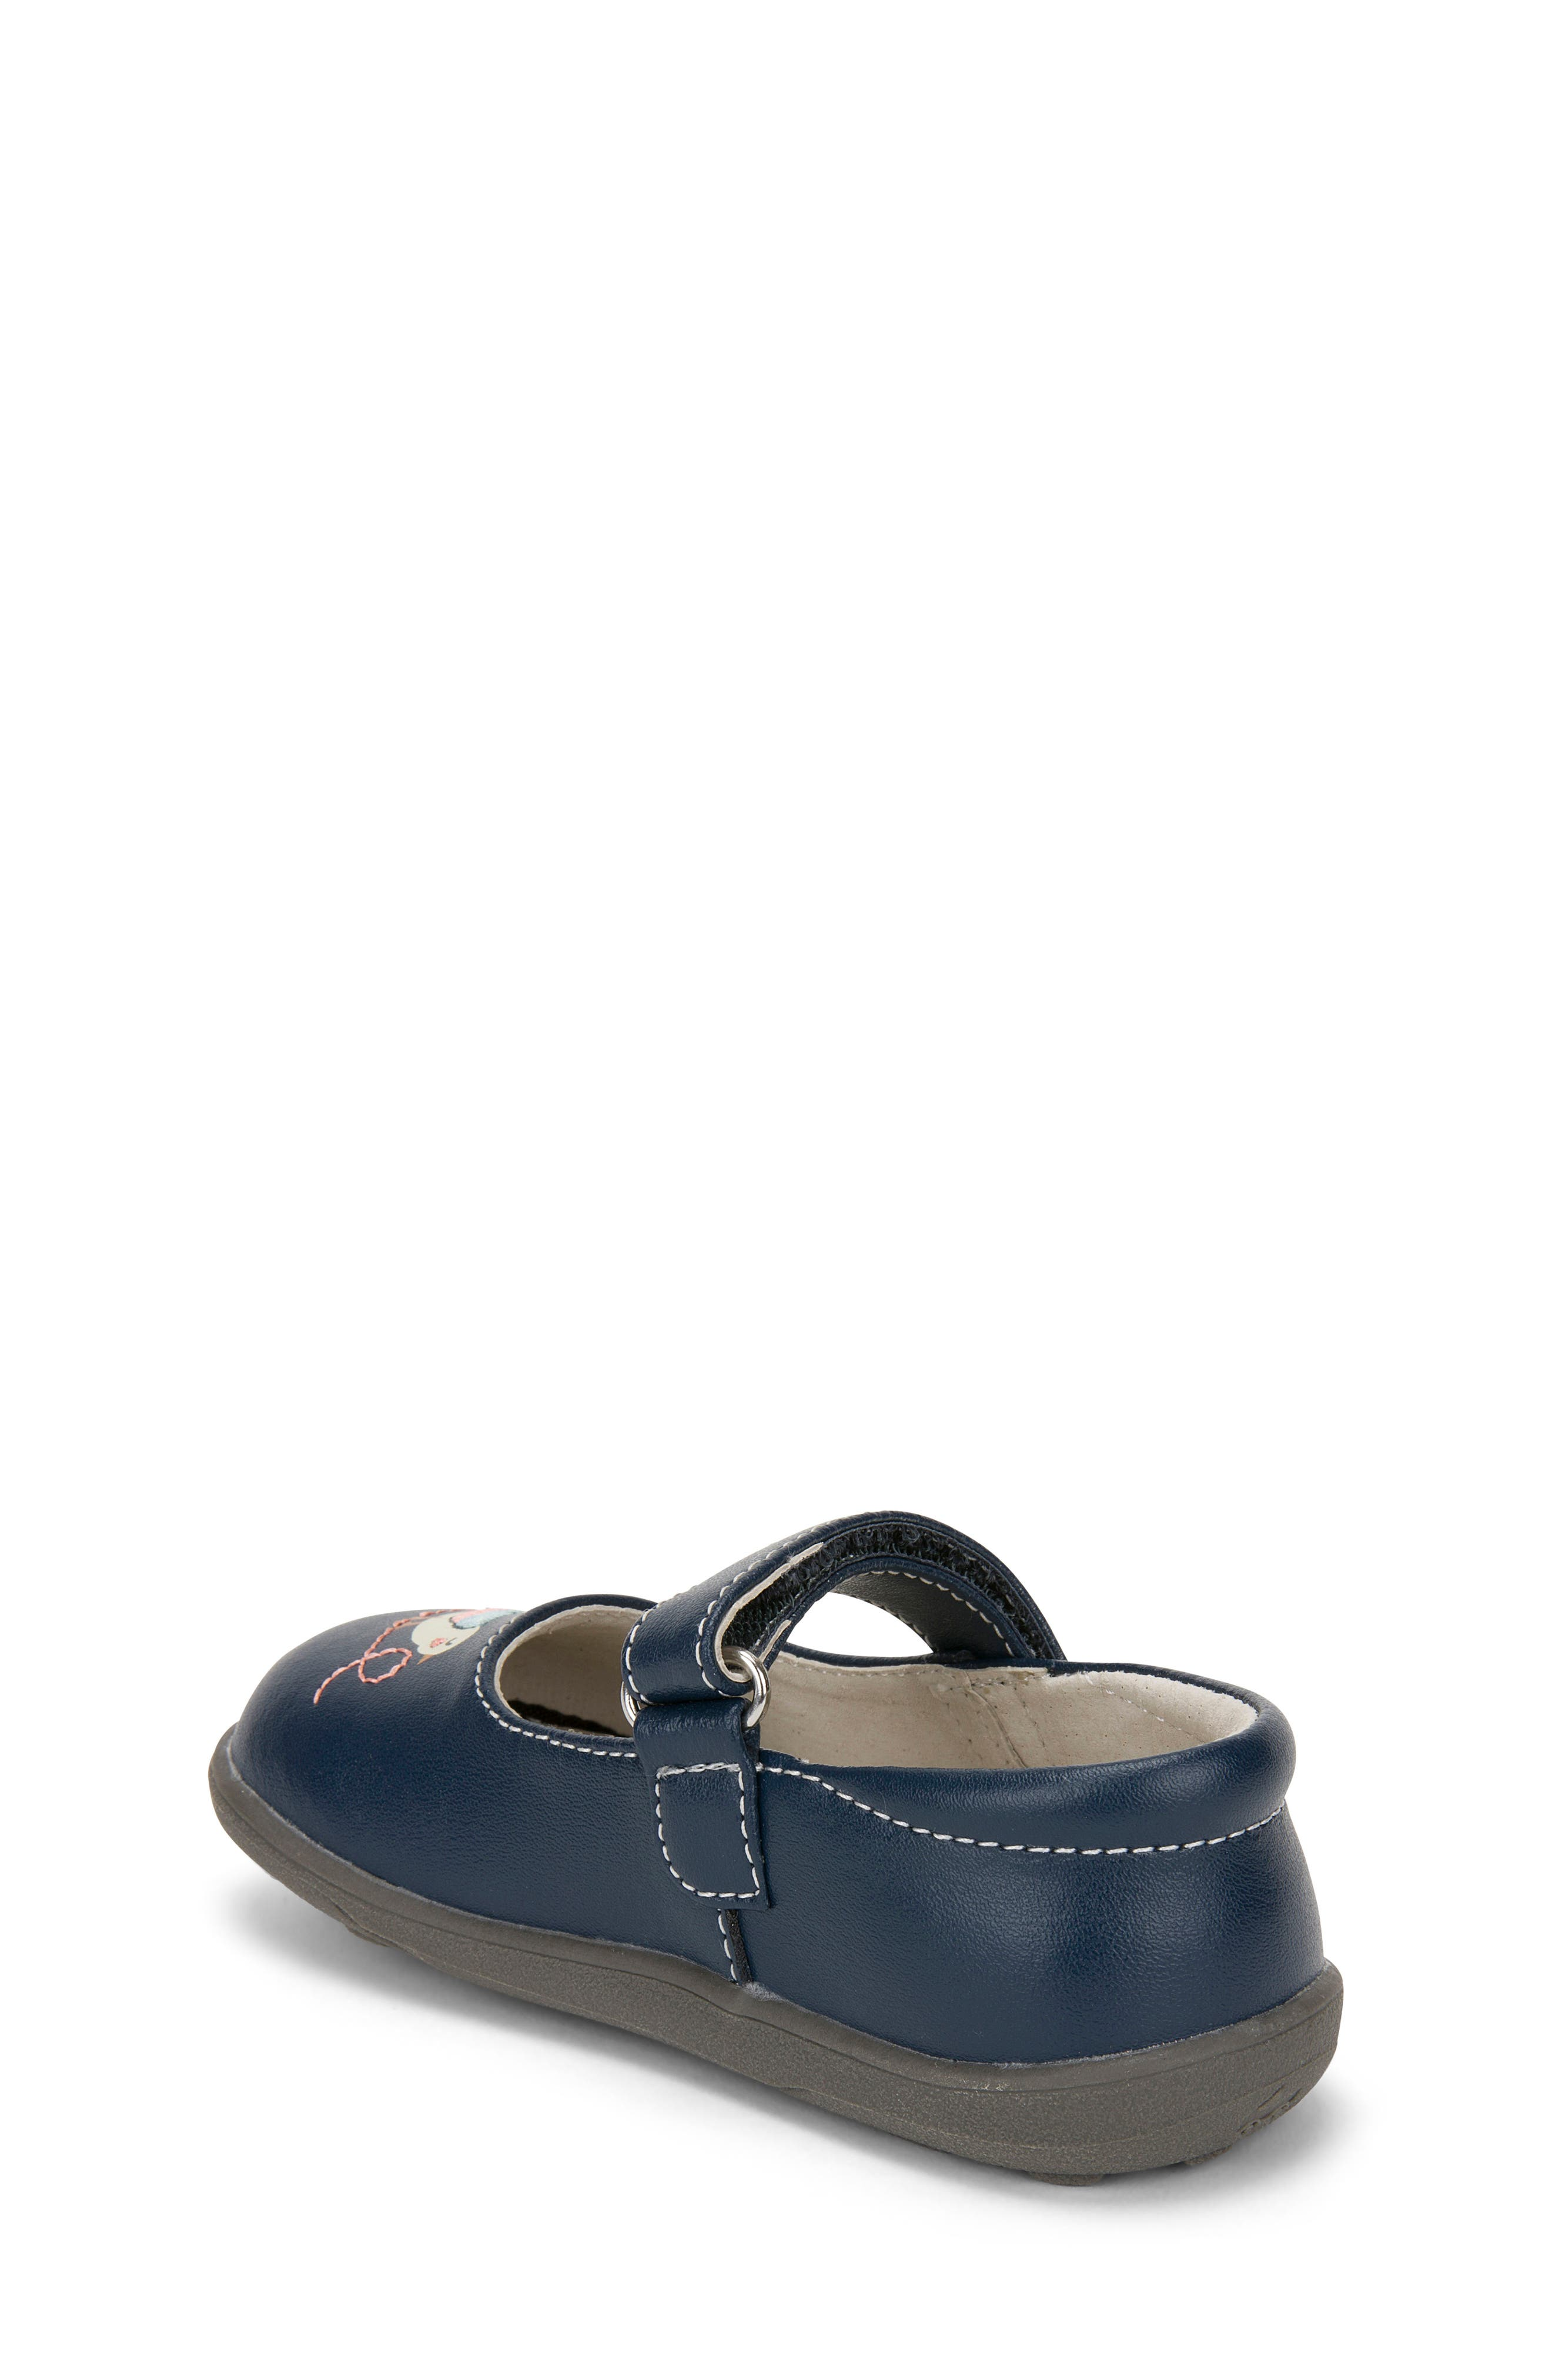 Ava Mary Jane Flat,                             Alternate thumbnail 2, color,                             Navy Leather